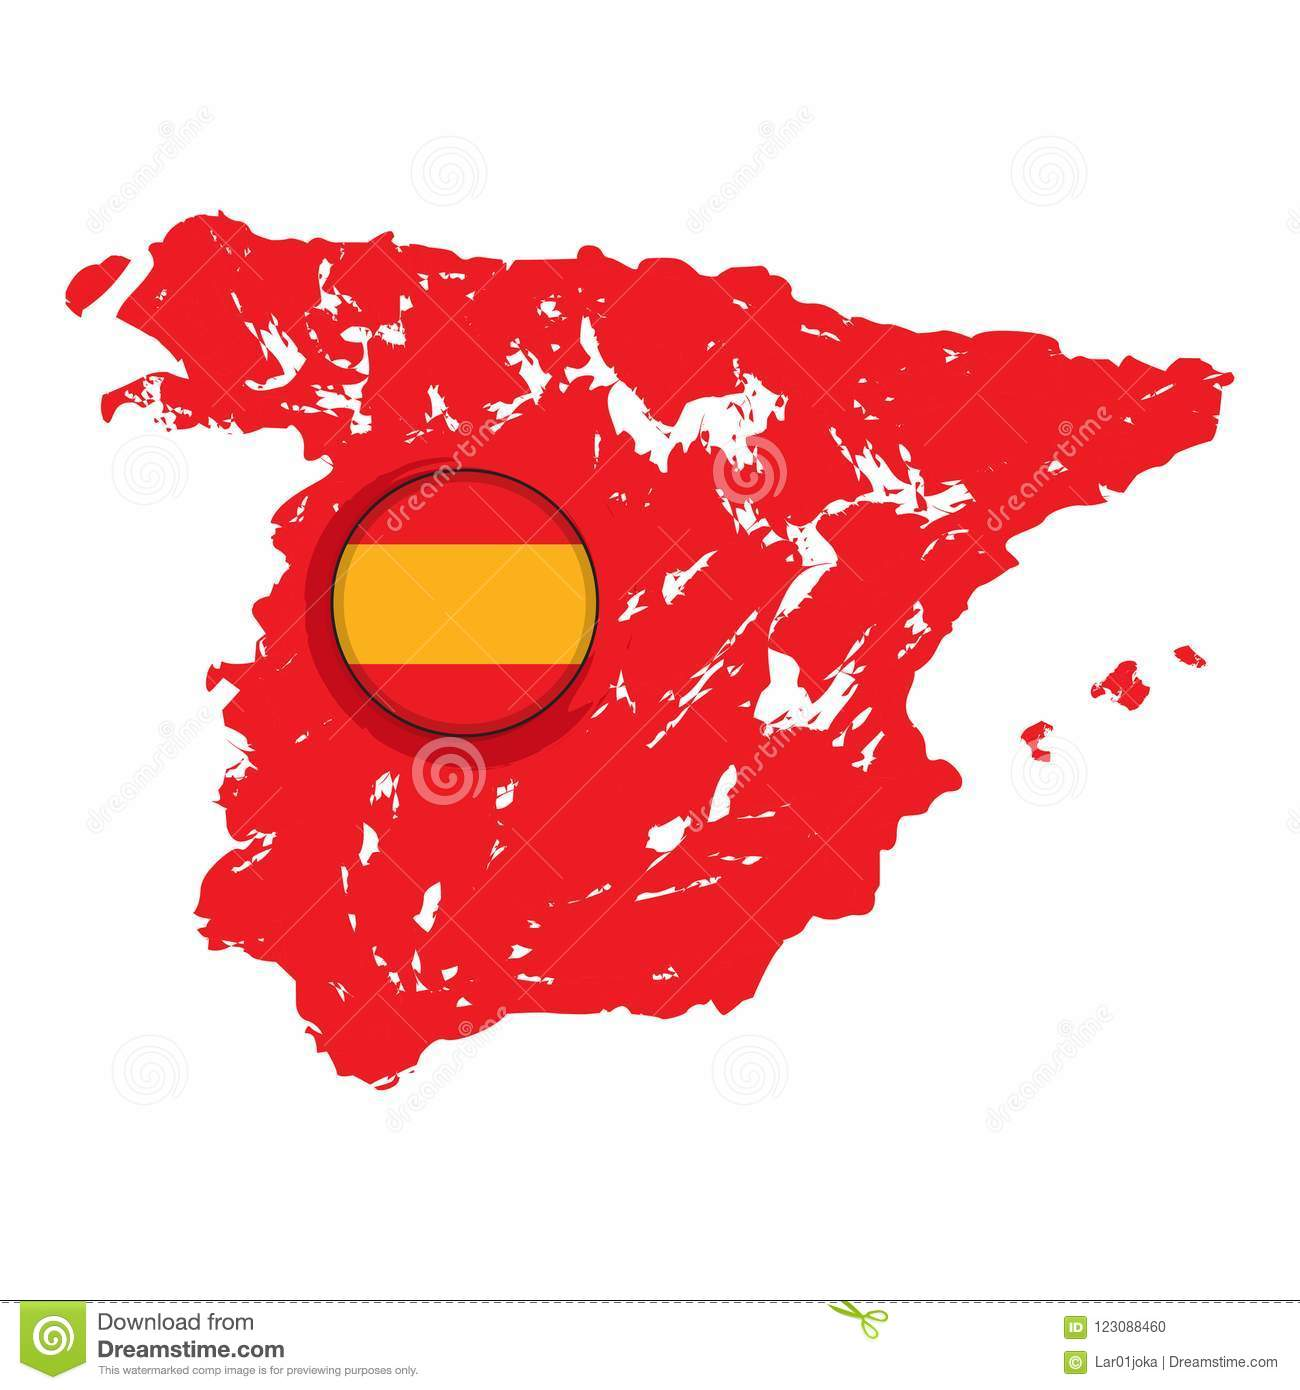 Map Of Spain To Label.Map Of Spain With A Label Stock Vector Illustration Of Isolated